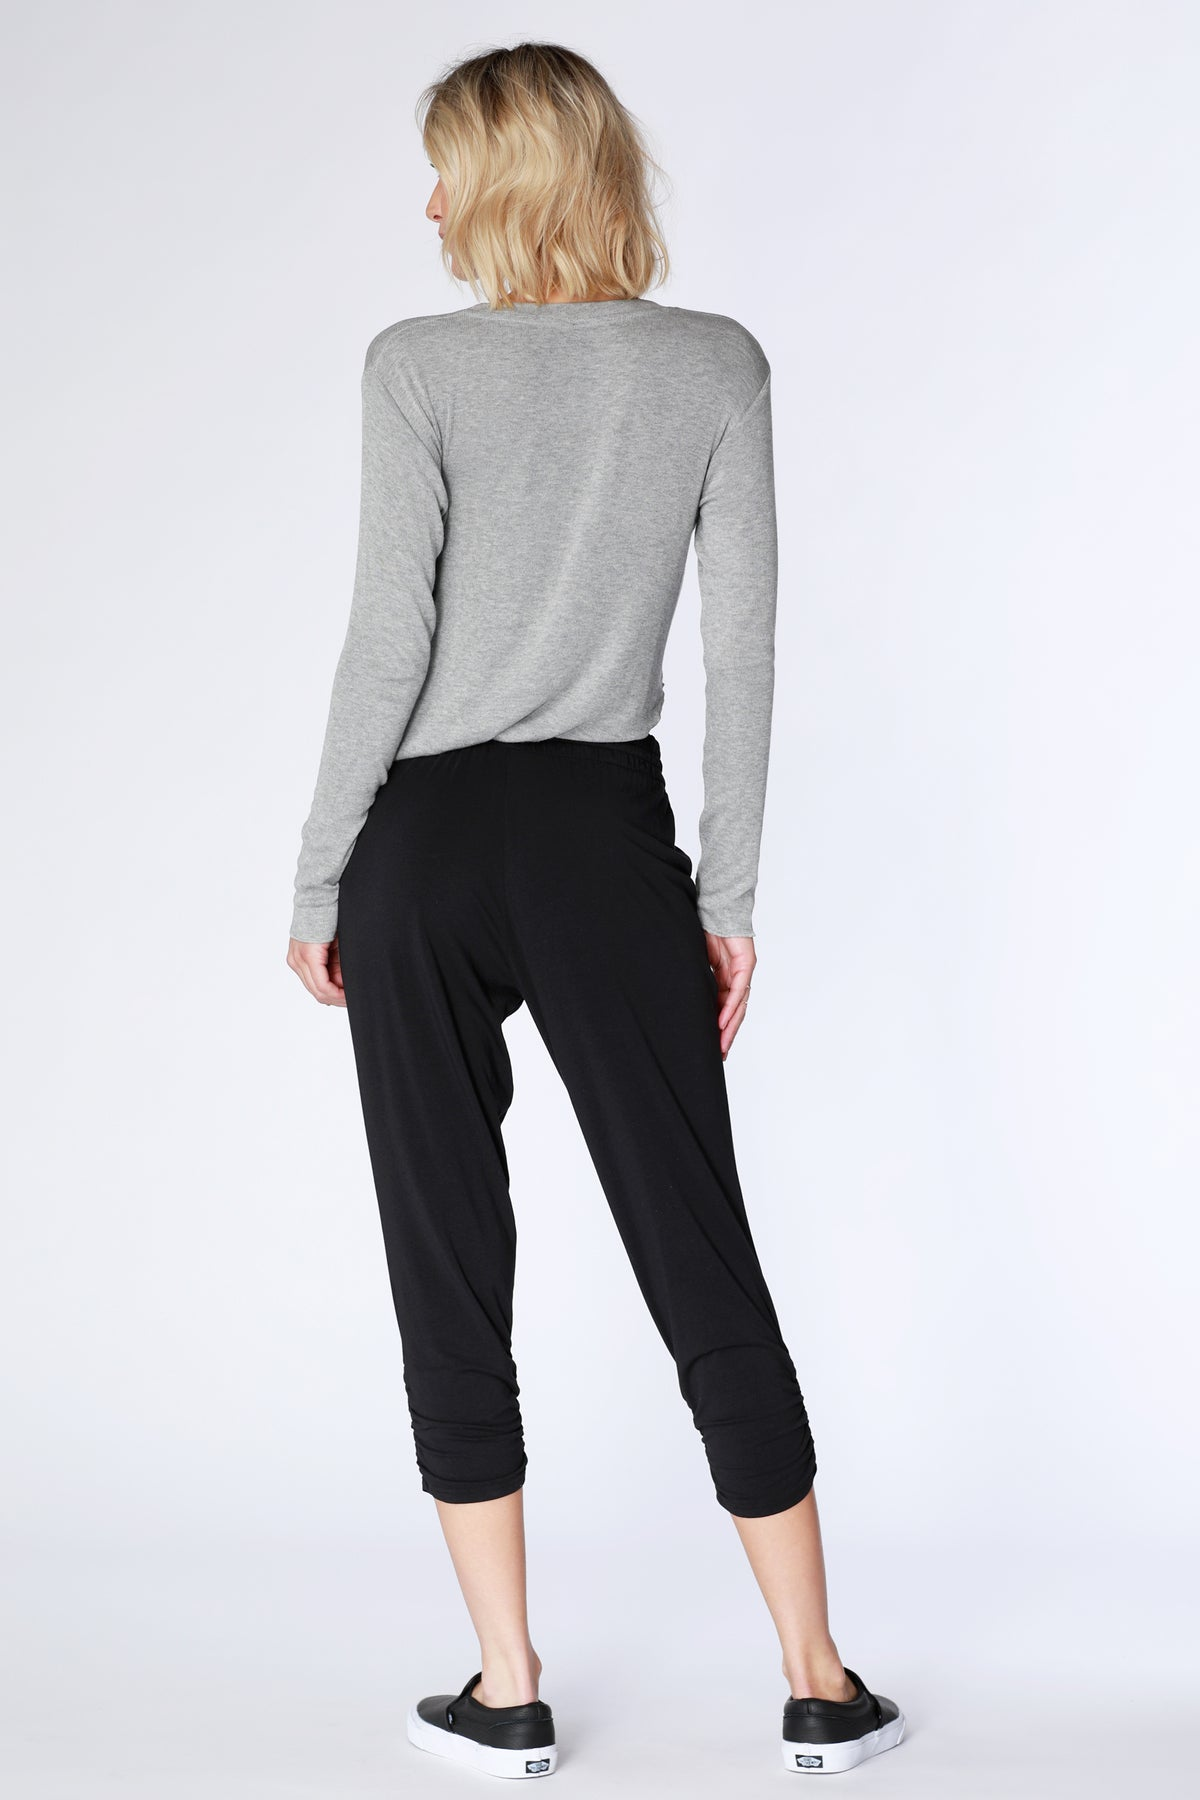 Shirred Leg Joggers - bobi Los Angeles